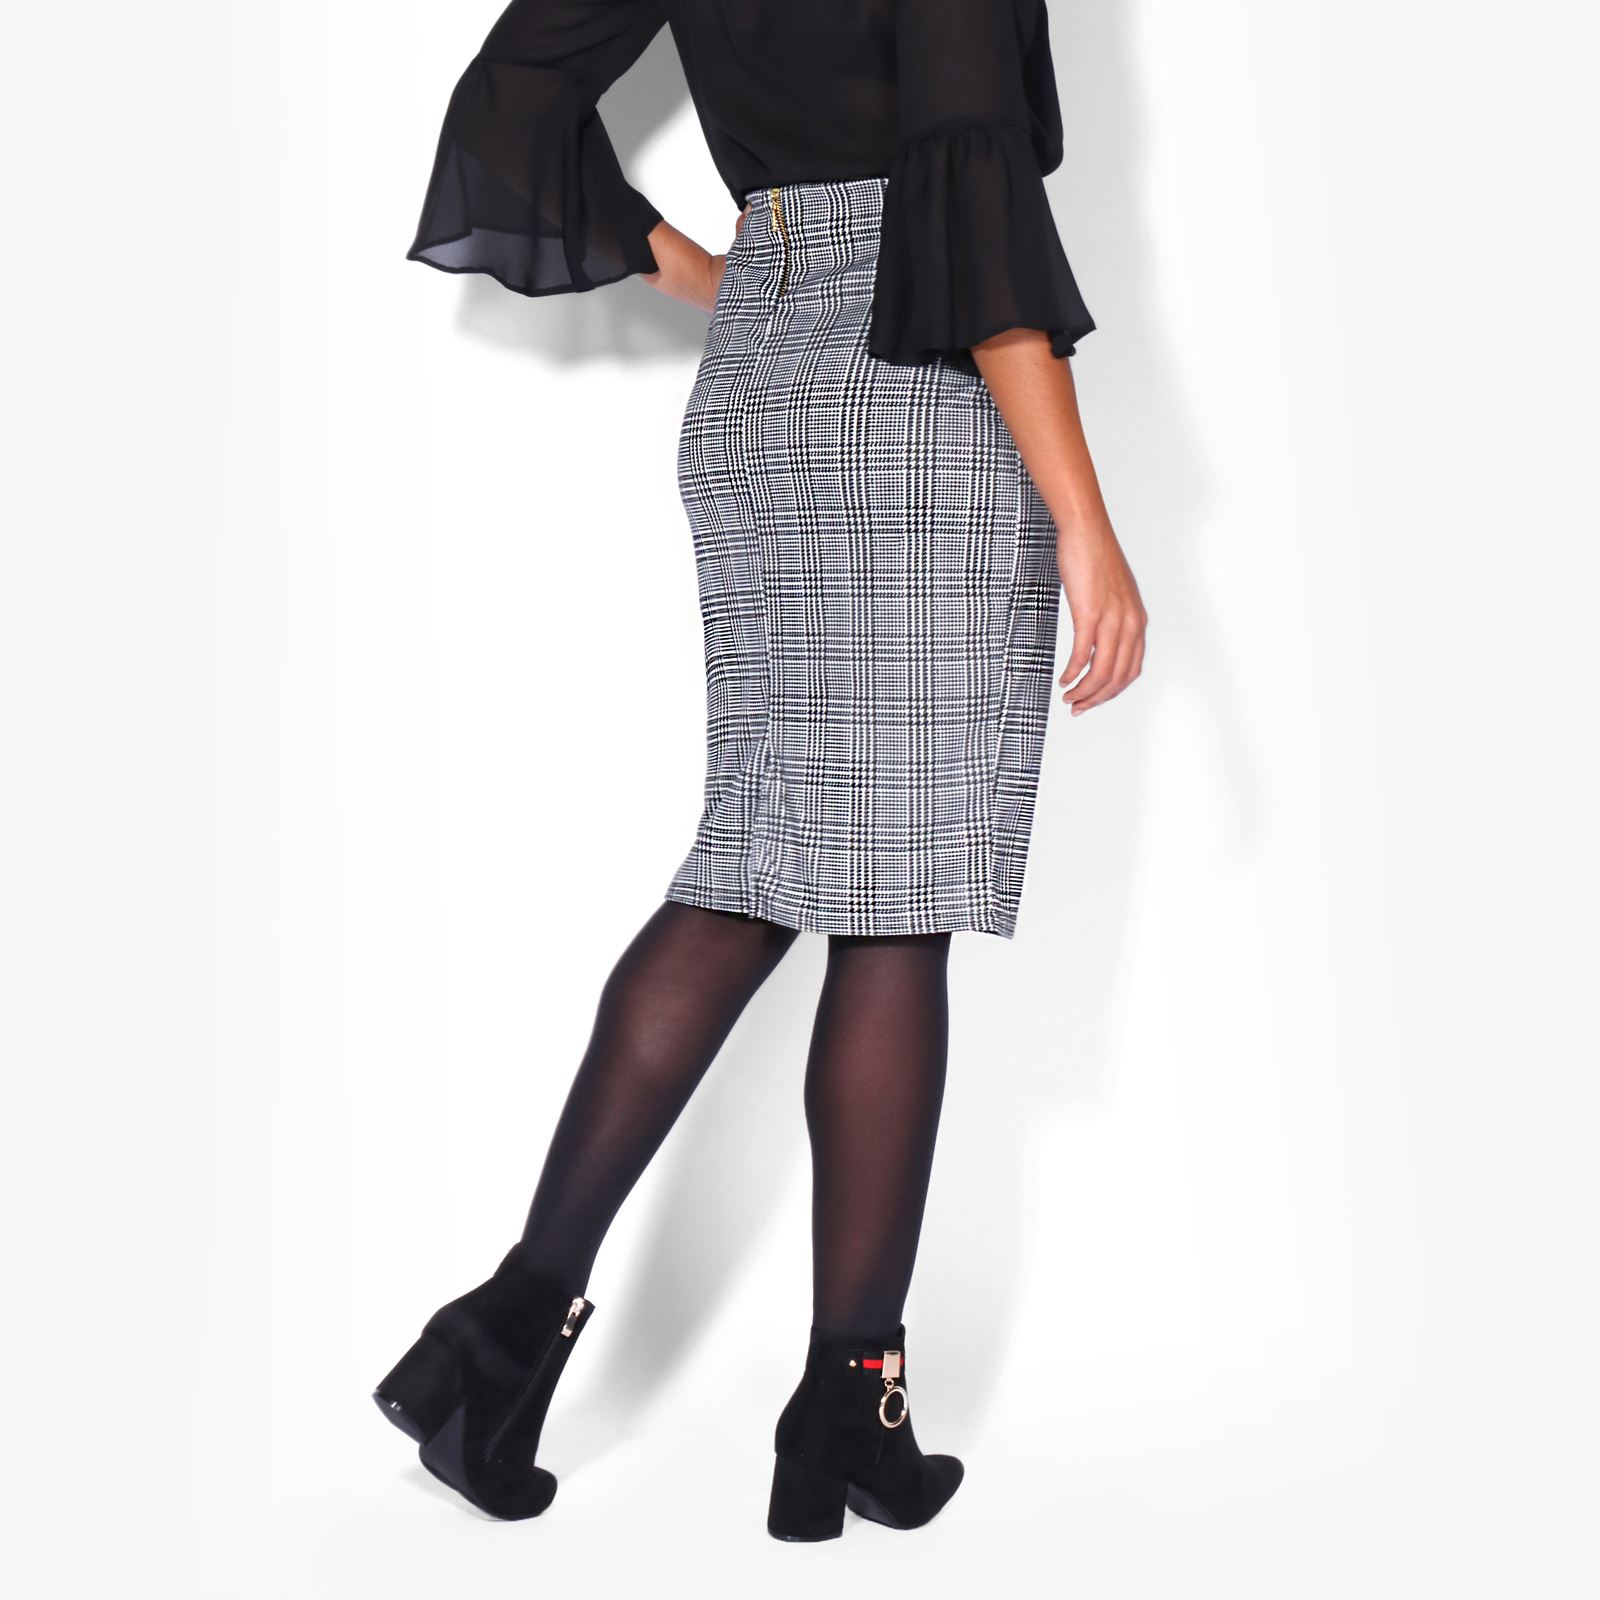 Womens-Ladies-Pencil-Midi-Skirt-Stretch-Fitted-Belt-Bodycon-Office-Work-8-20 thumbnail 9